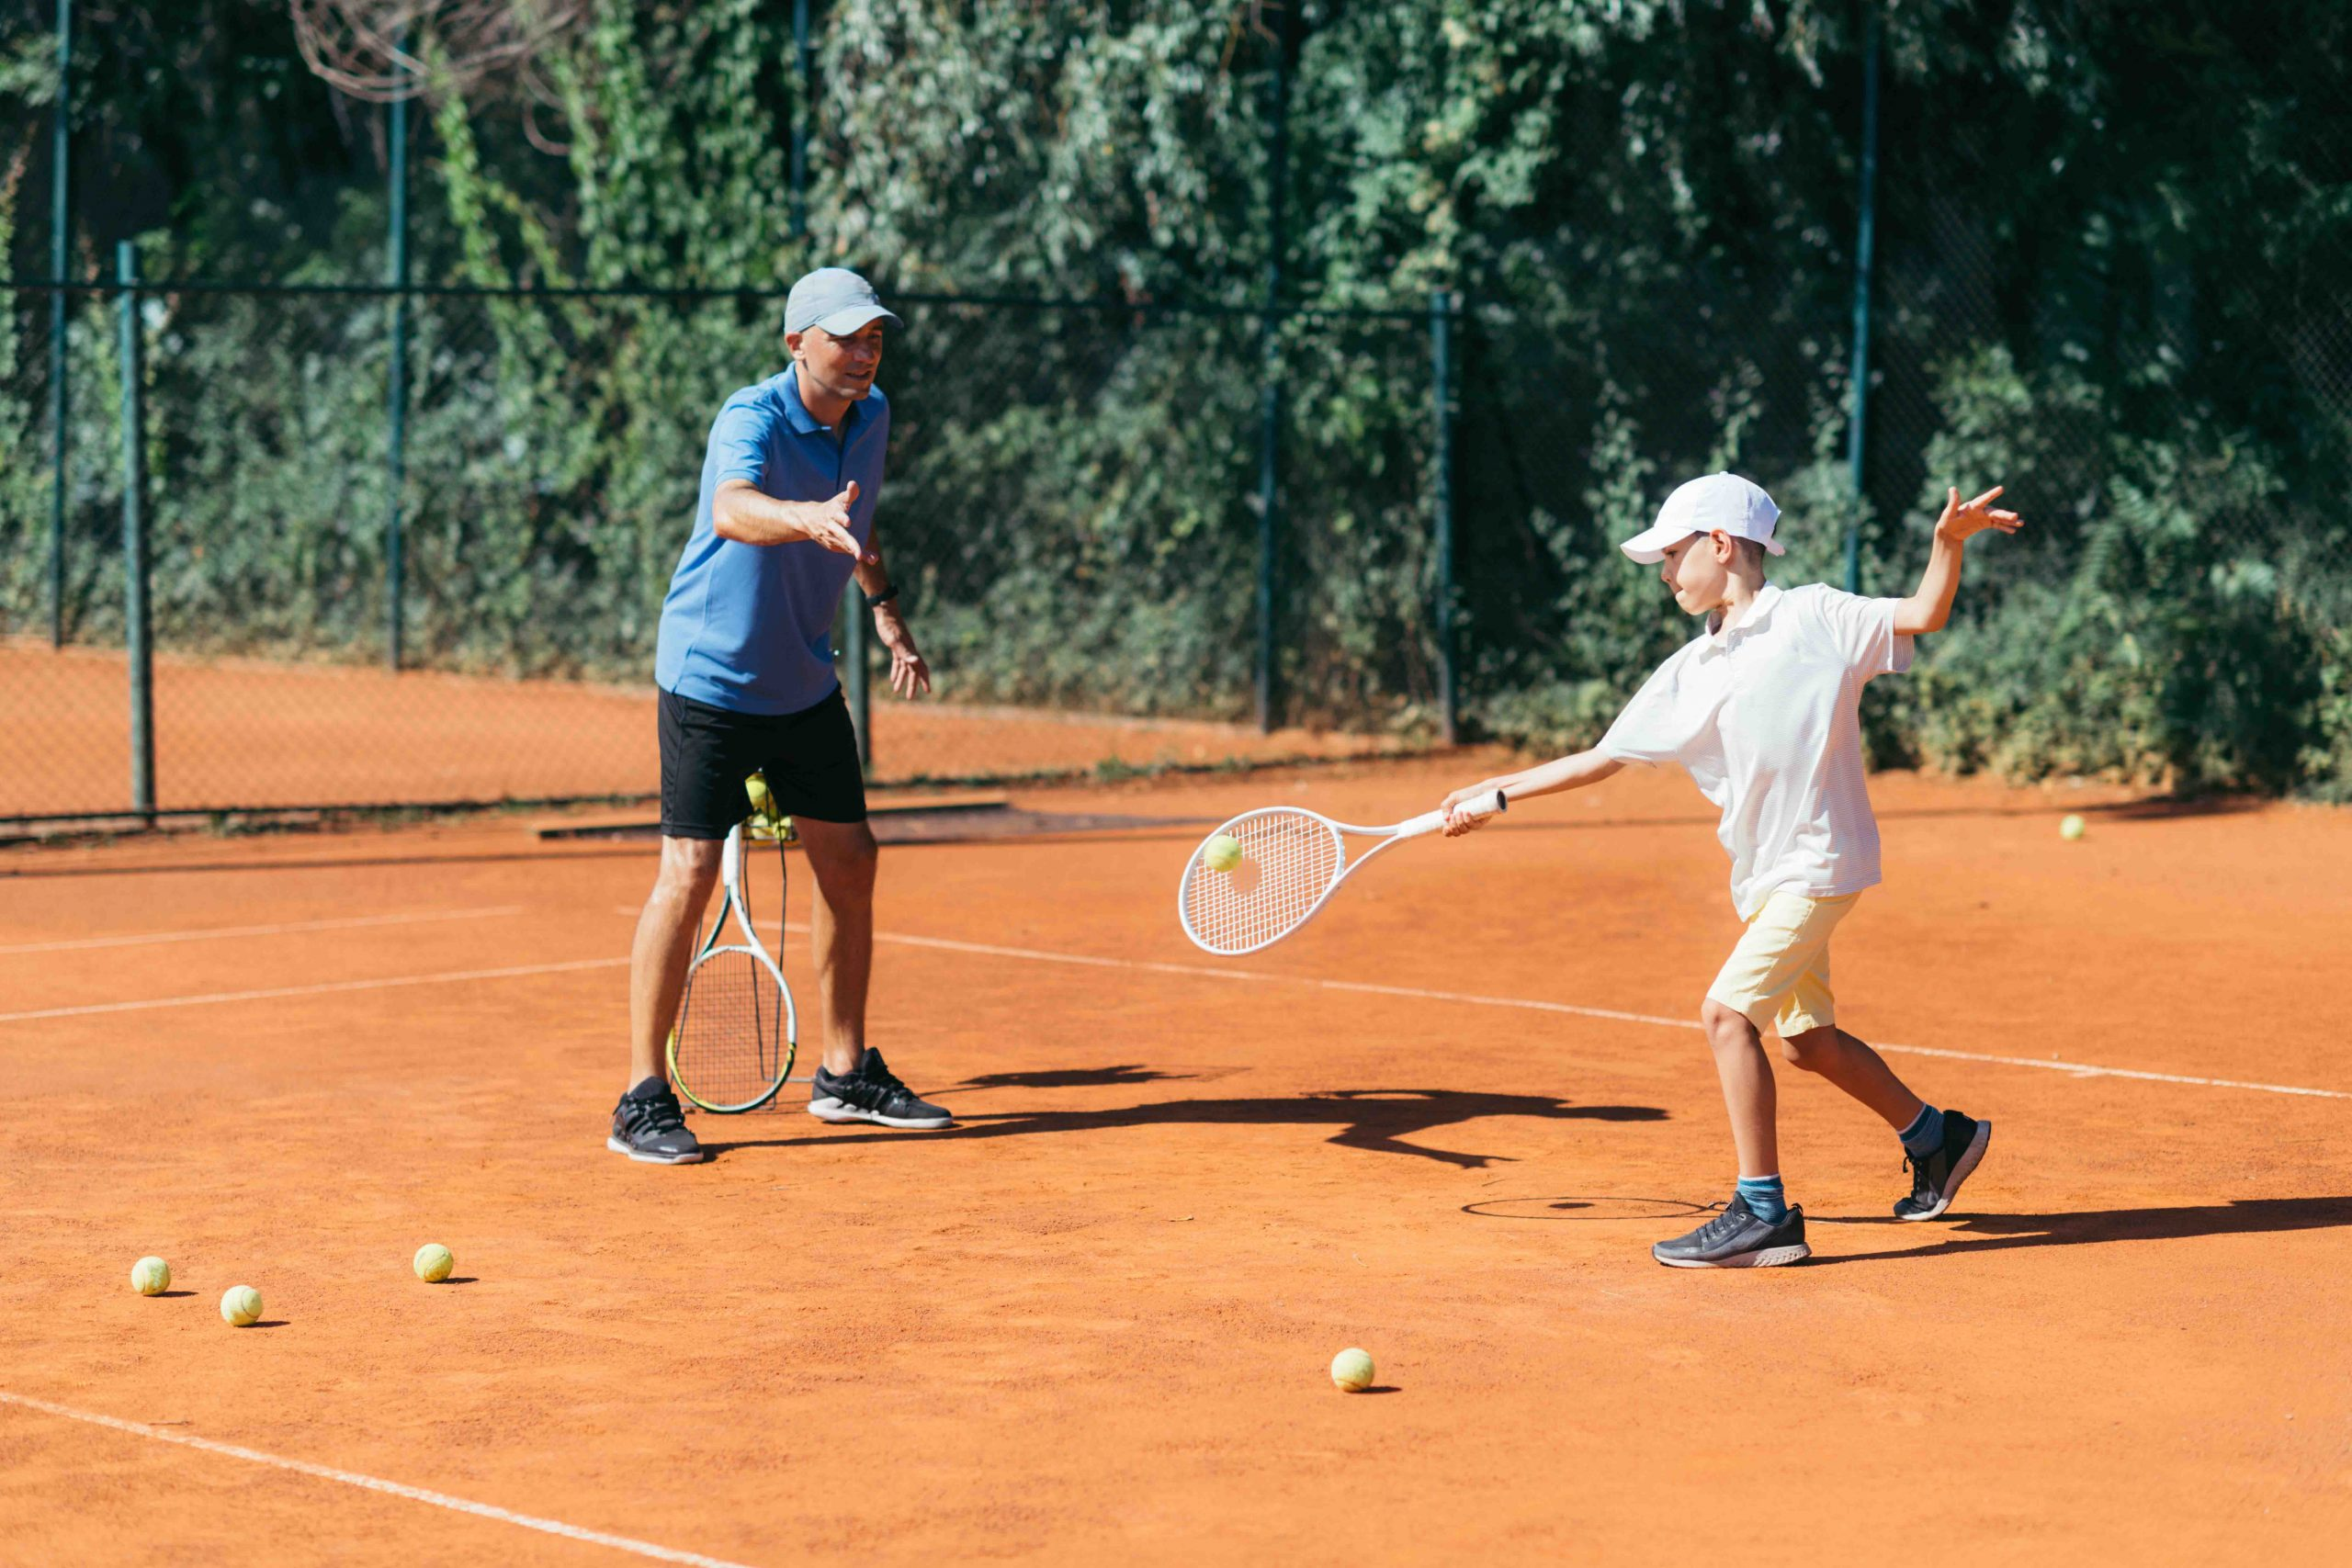 Tennis Instructor with Boy Having a Tennis Lesson on Clay Court.